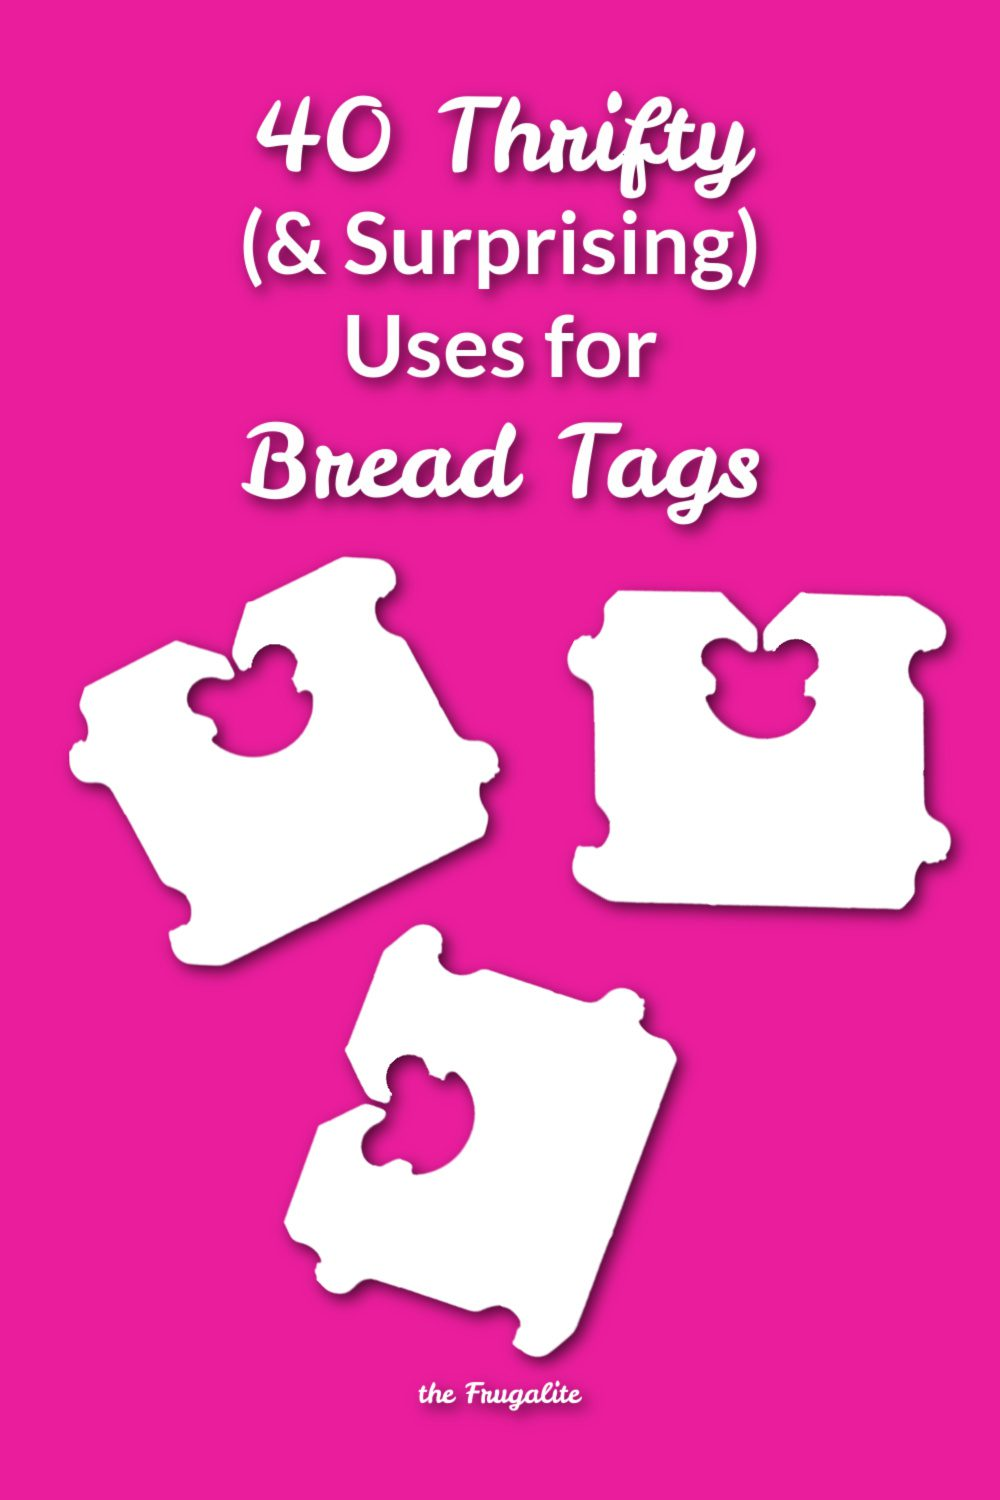 40 Thrifty and Surprising Uses for BREAD TAGS